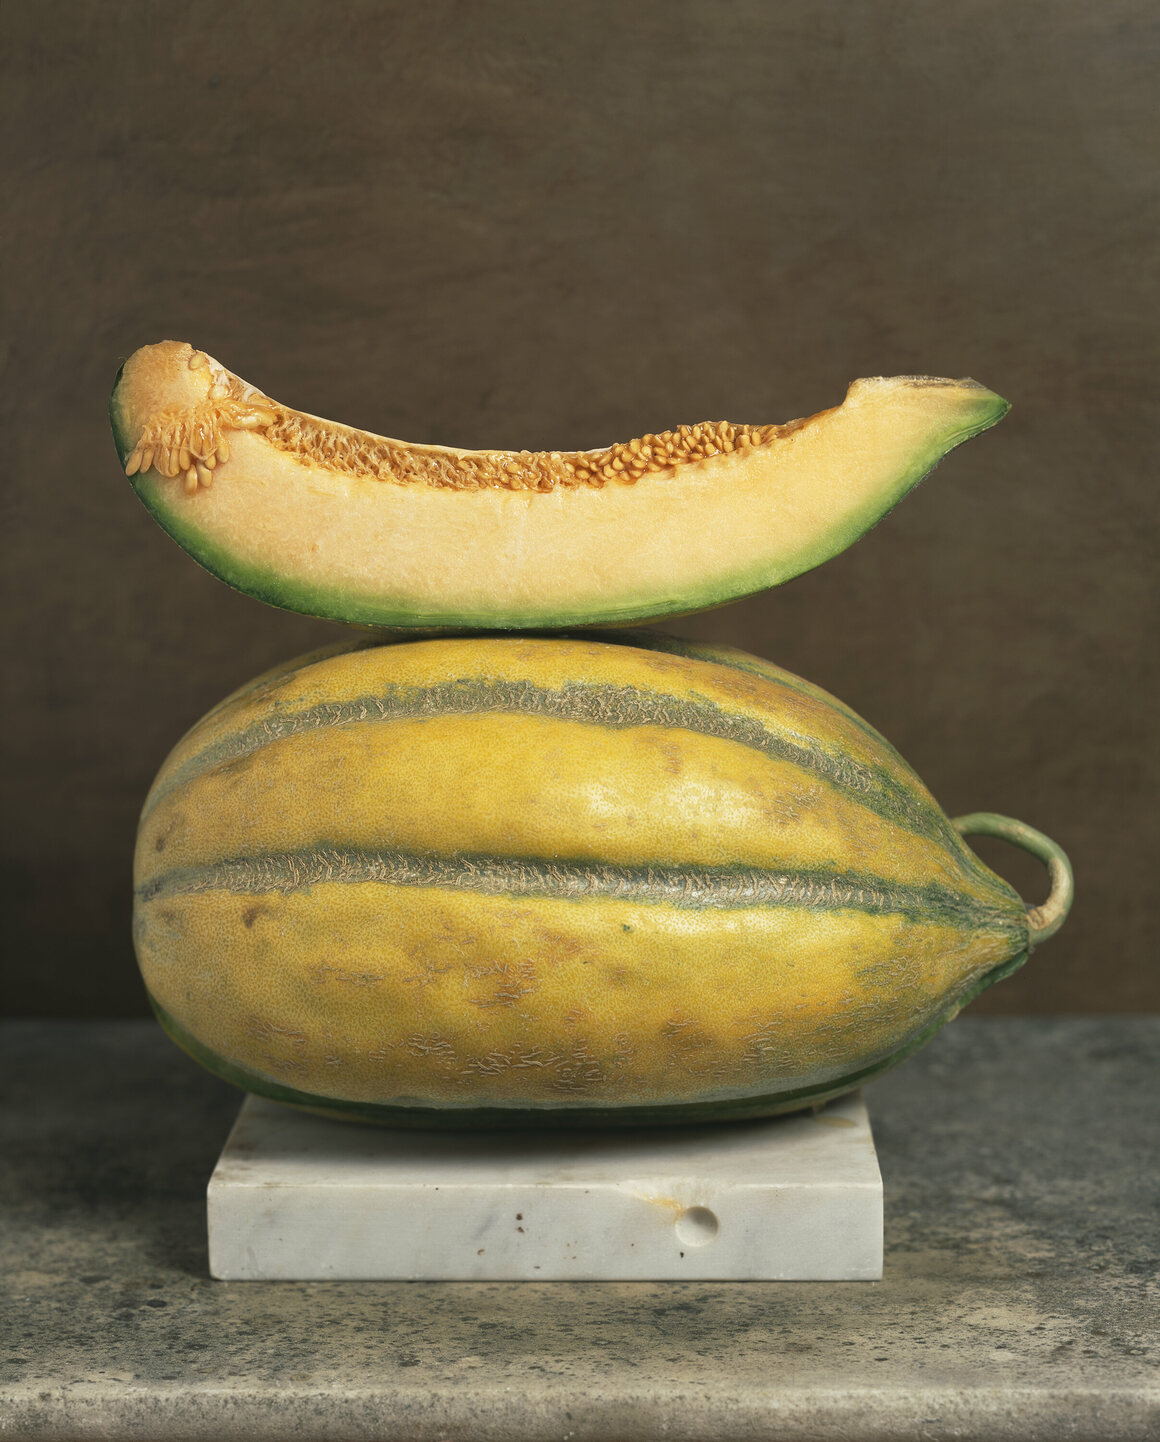 Around The World In 125 Melons Gastro Obscura